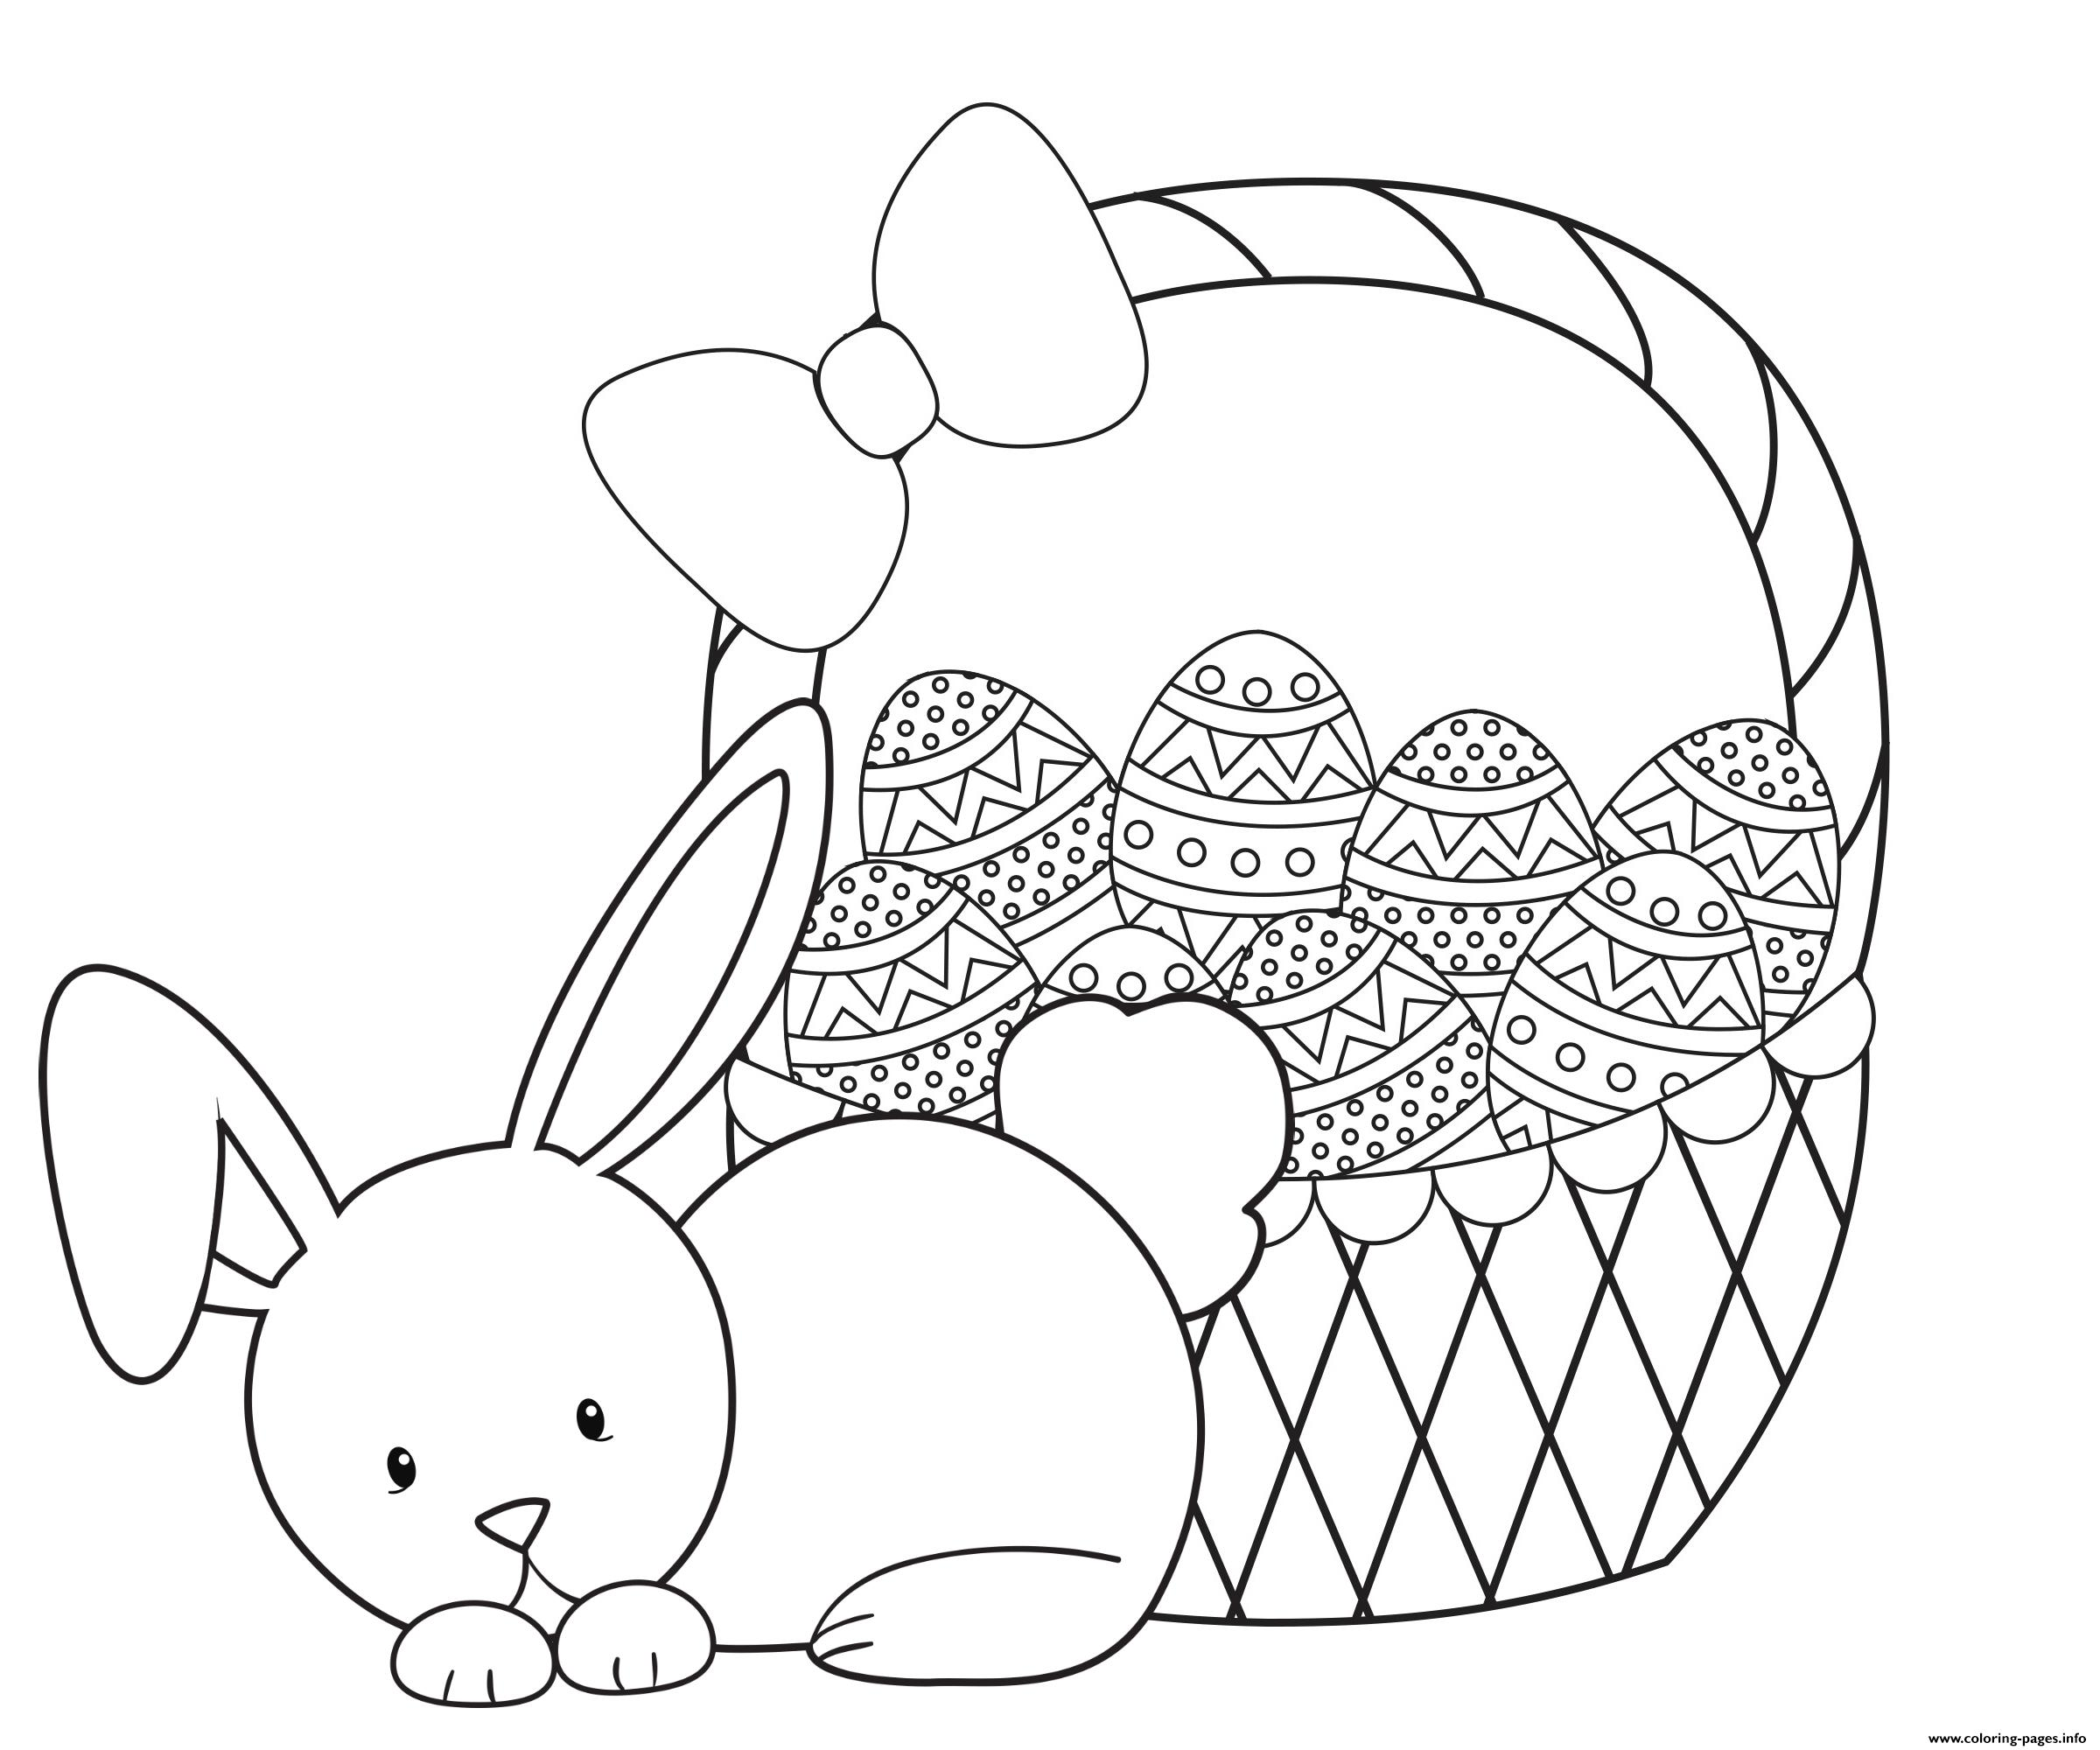 photograph relating to Easter Eggs Coloring Pages Printable identified as Lovely Rabbit Easter Eggs Basket Coloring Internet pages Printable